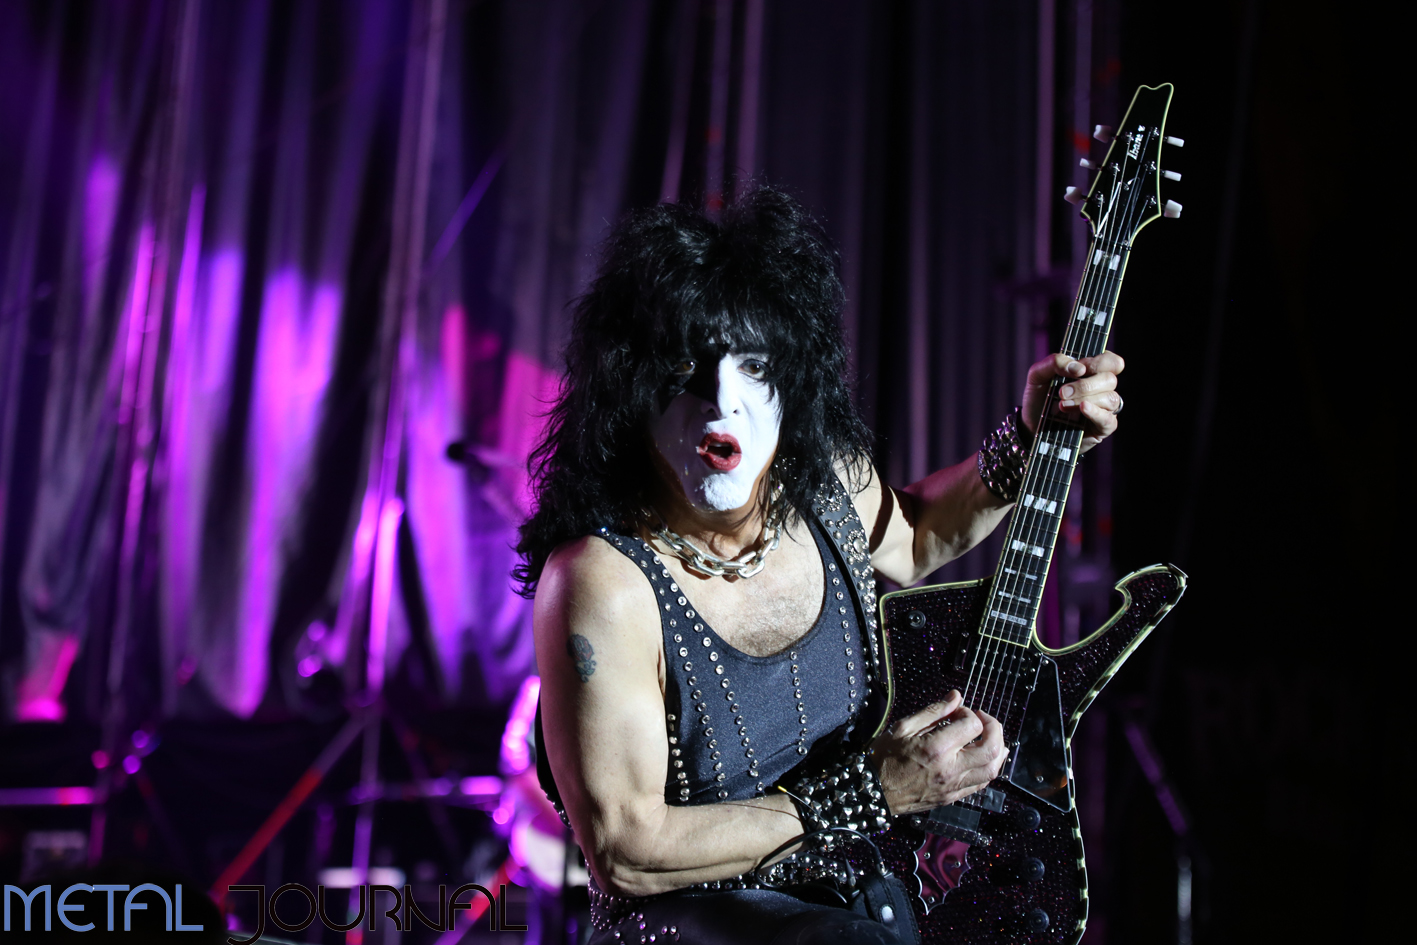 kiss rock fest 18 - metal journal pic 6